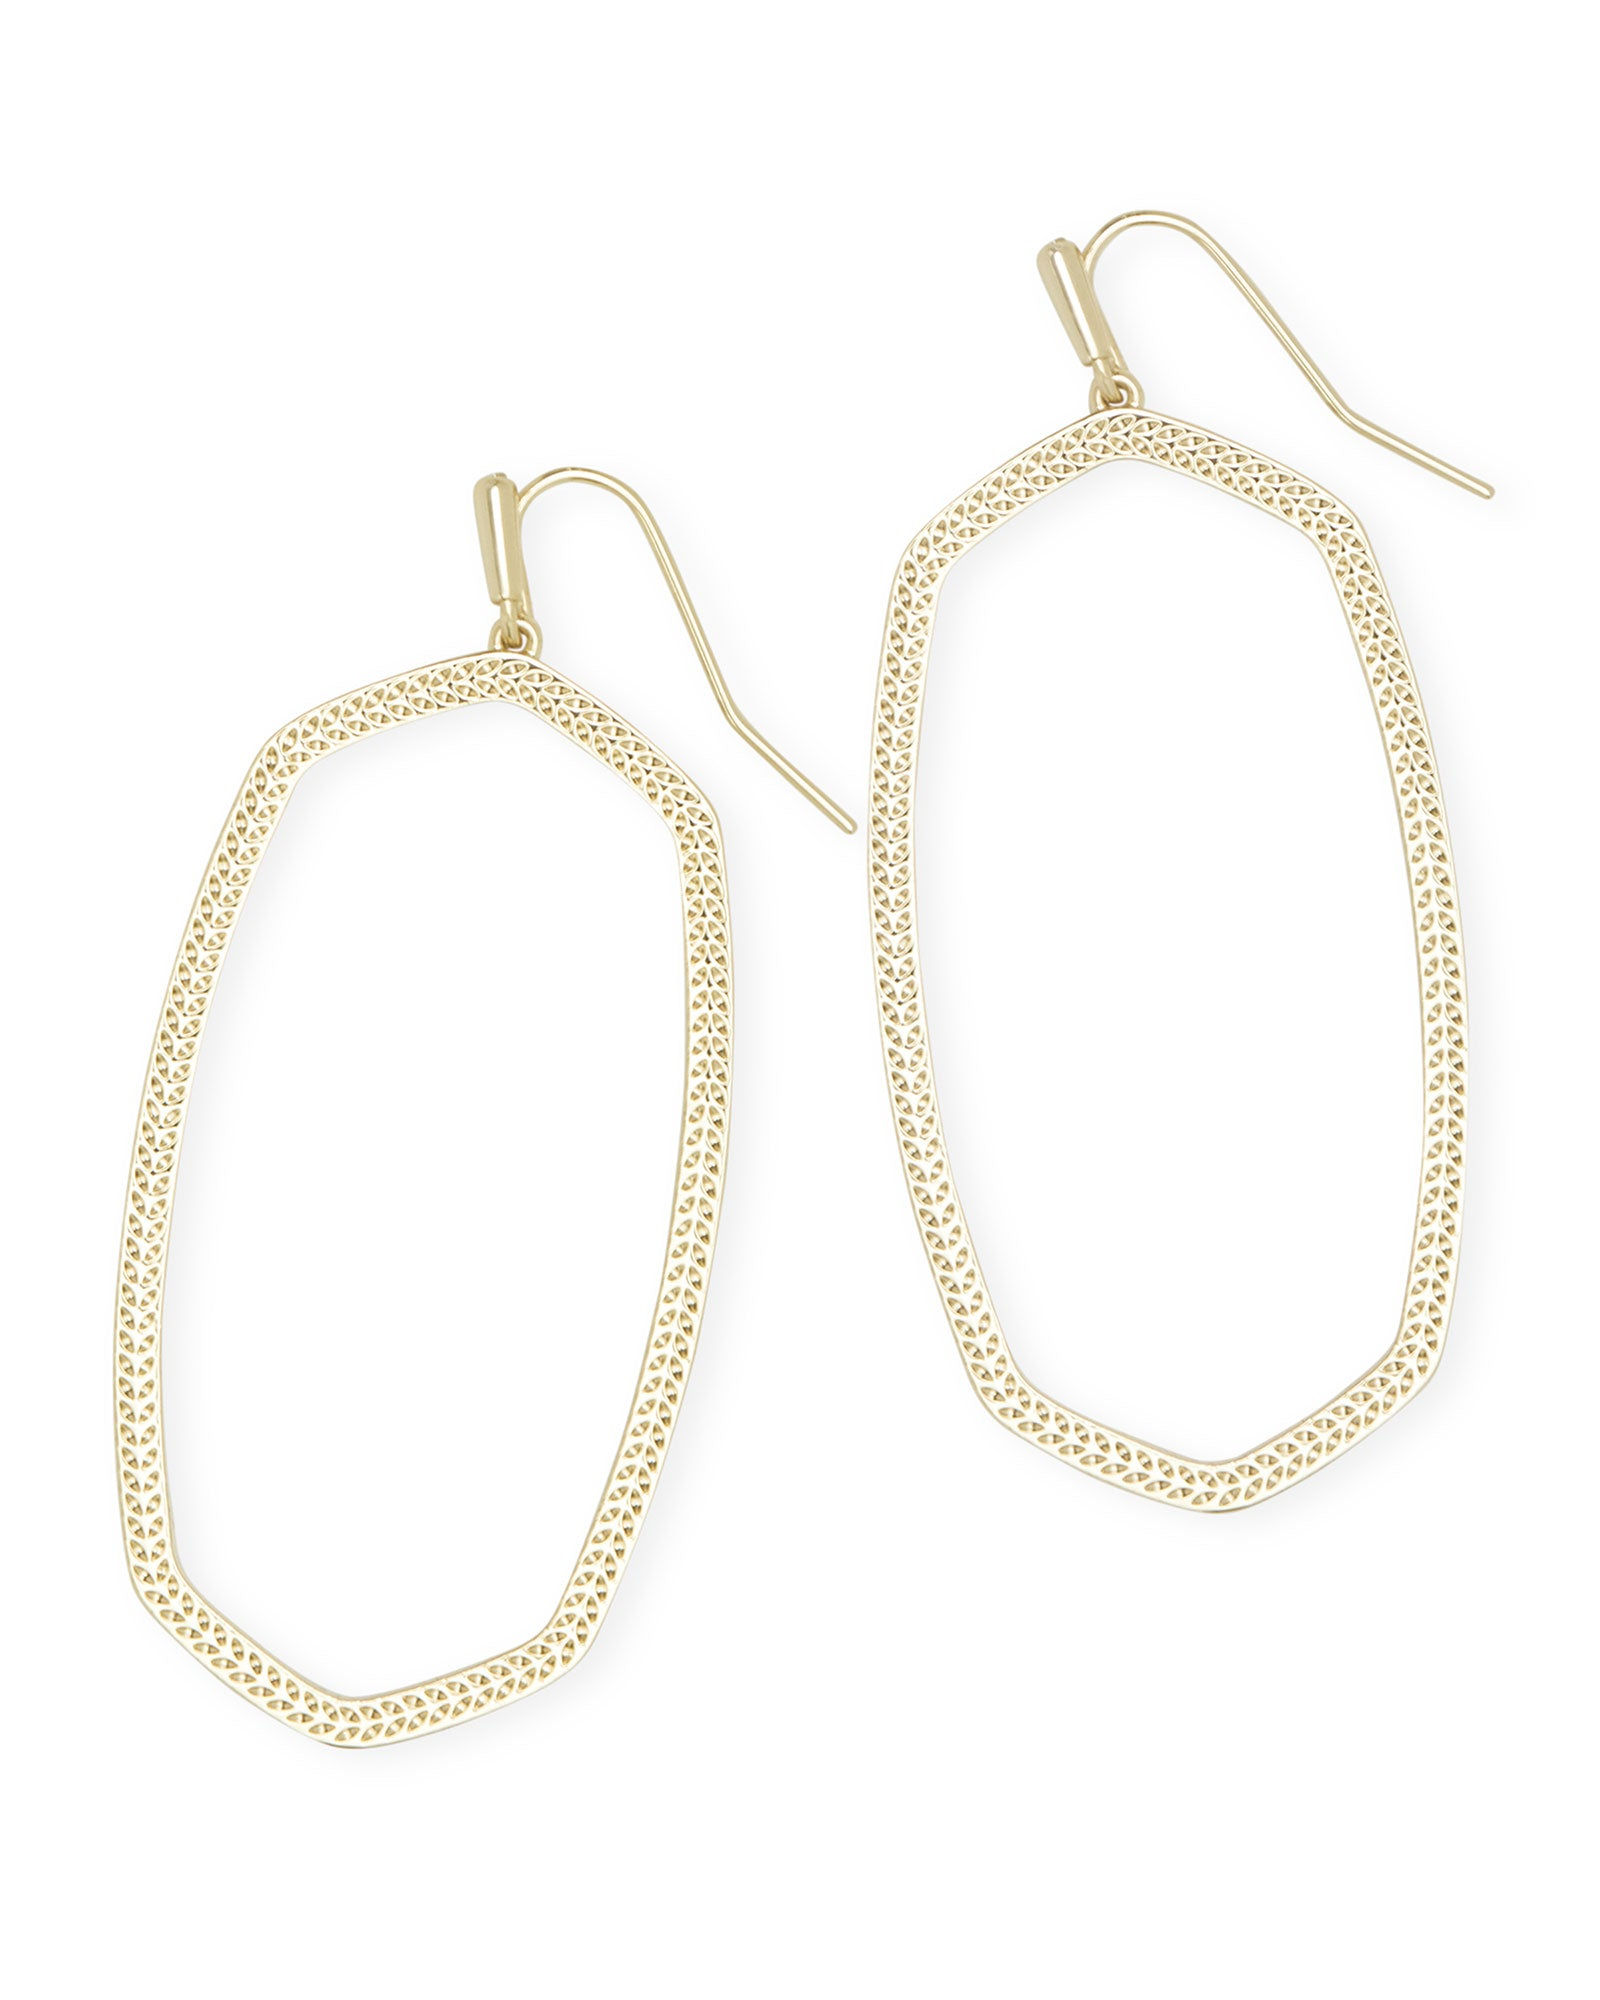 Kendra Scott Danielle Open Frame Statement Earrings In Gold